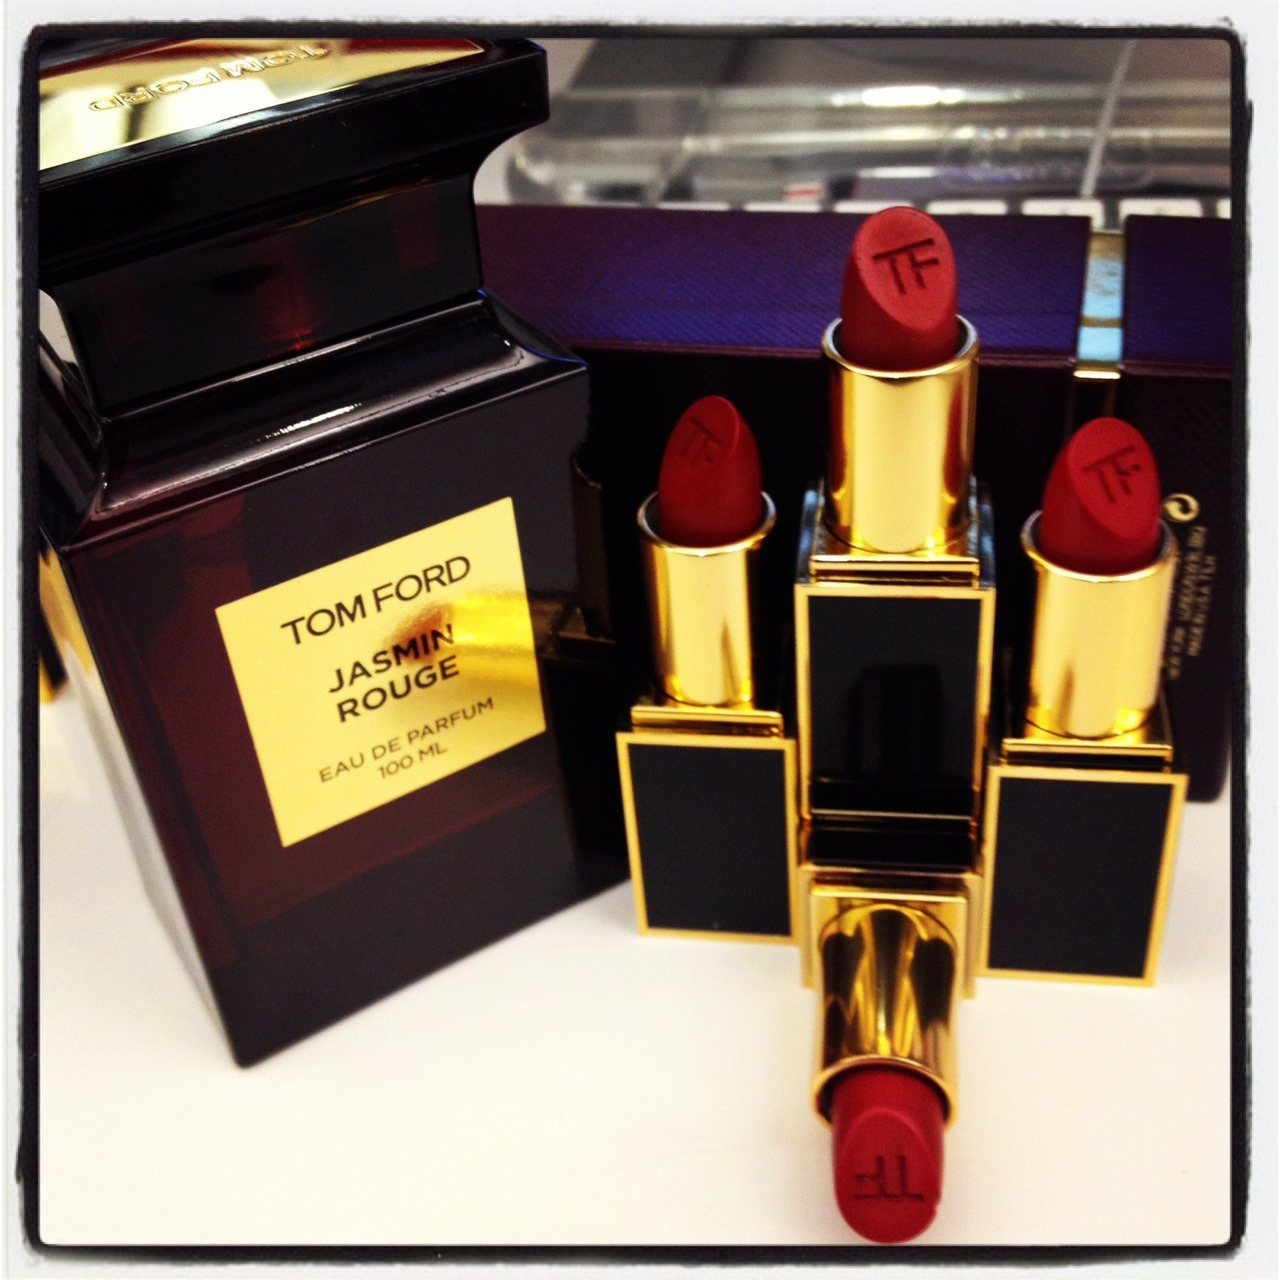 Totally Crushing On: Tom Ford's Holiday Lipsticks These gorgeous crimson lipsticks just hit our desks and we couldn't be more smitten. The Jasmin Rouge collection, inspired by Tom Ford's spiced-floral fragrance of the same name, features two cherry-reds (Slander and Narcotic Rouge) and two crimson-reds (Reckless and Diabolique). My personal favorite is Narcotic Rouge, a matte finish cherry, that's the ideal mix of berry and bold red and will be great for all those upcoming holiday soirees. Keep an eye out for these pretty shades at Neiman Marcus this month! We know these lipsticks are super-luxe, so we picked our favorite rouge hues that won't break the bank. Here are our top three: Lipstick Queen Medieval Tinted Lip Treatment: This hydrating, silky formula goes on sheer at first and builds up to a pretty crimson. Bobbi Brown Creamy Matte Lipstick: We love this option with our favorite LBD since the highly-pigmented formula has a satiny matte finish.  Beauty Is Life Red Lipstick: For a long-lasting shade (say, to last through holiday cookies, cake and mulled cider), we always reach for this cherry shade. —Candice Have the lipstick but don't know how to wear it? Here's how to apply a flawless red lip.